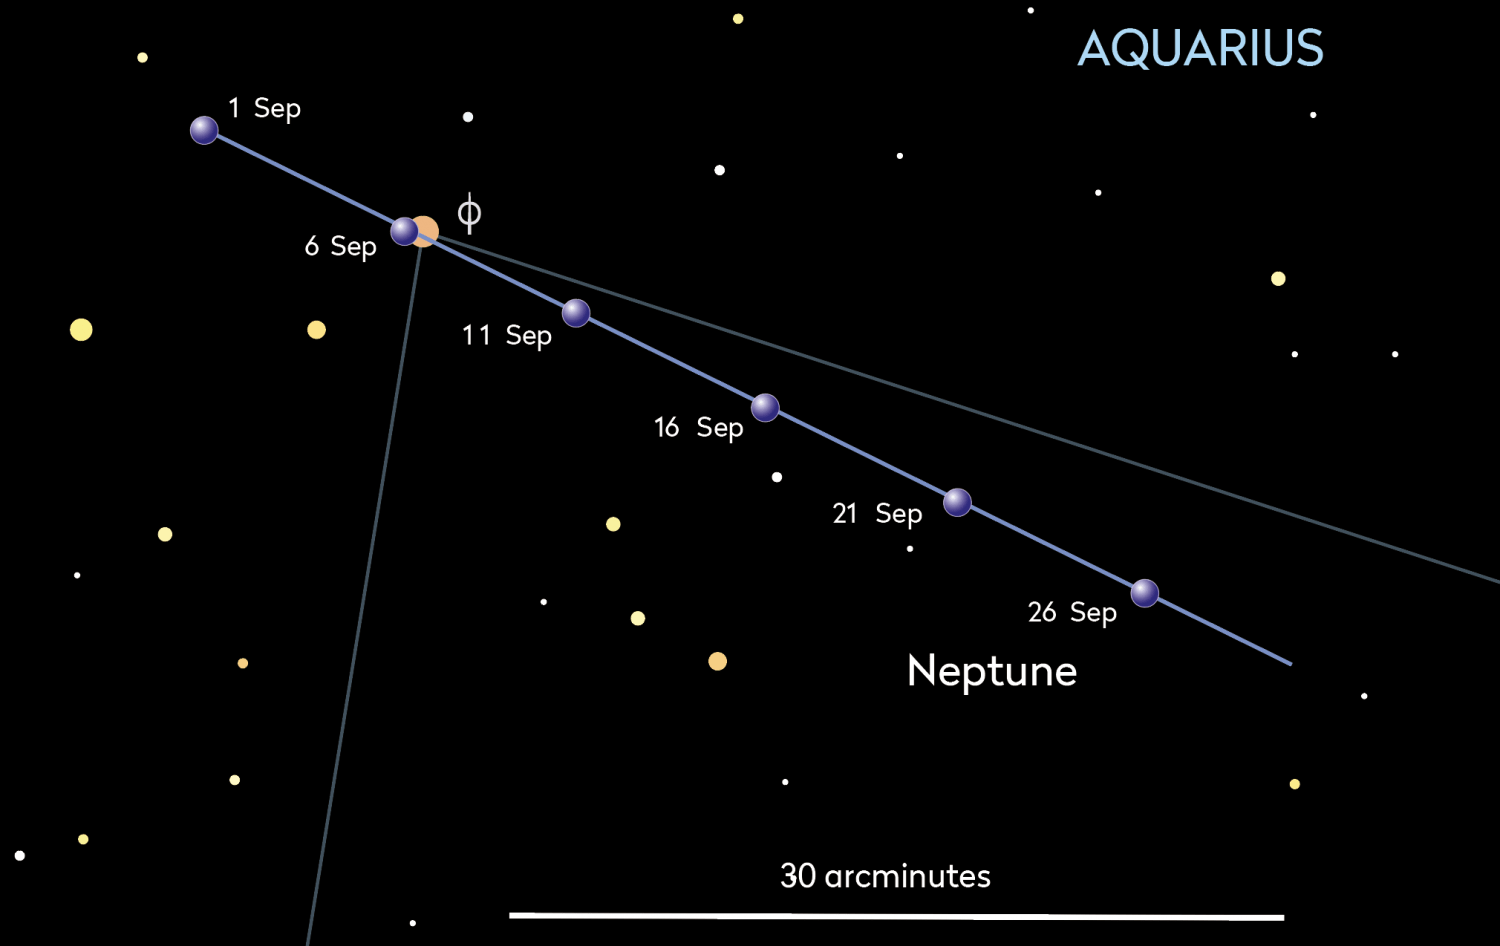 Neptune tracks through Aquarius, and passes close to the star Phi Aquarii on 5–6 Sep. Credit: Pete Lawrence